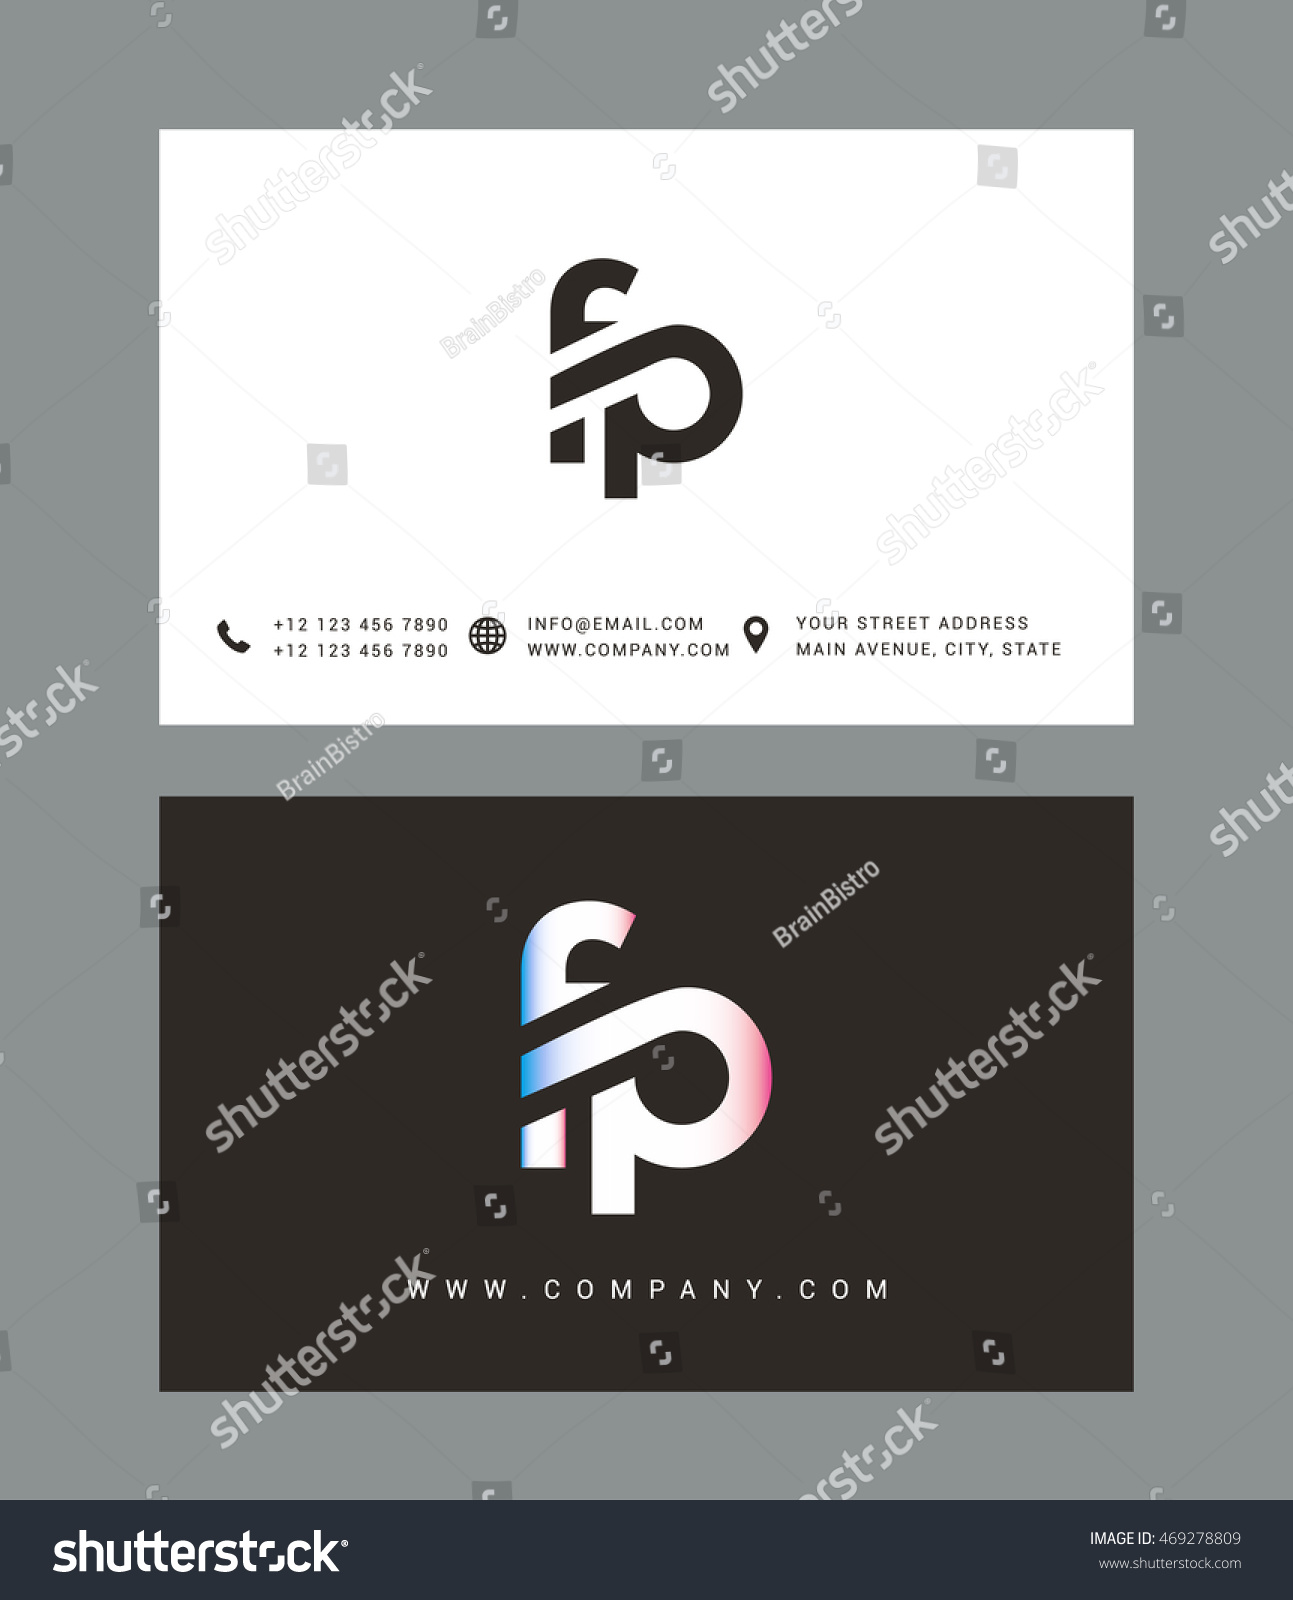 p and f on business cards best business 2017